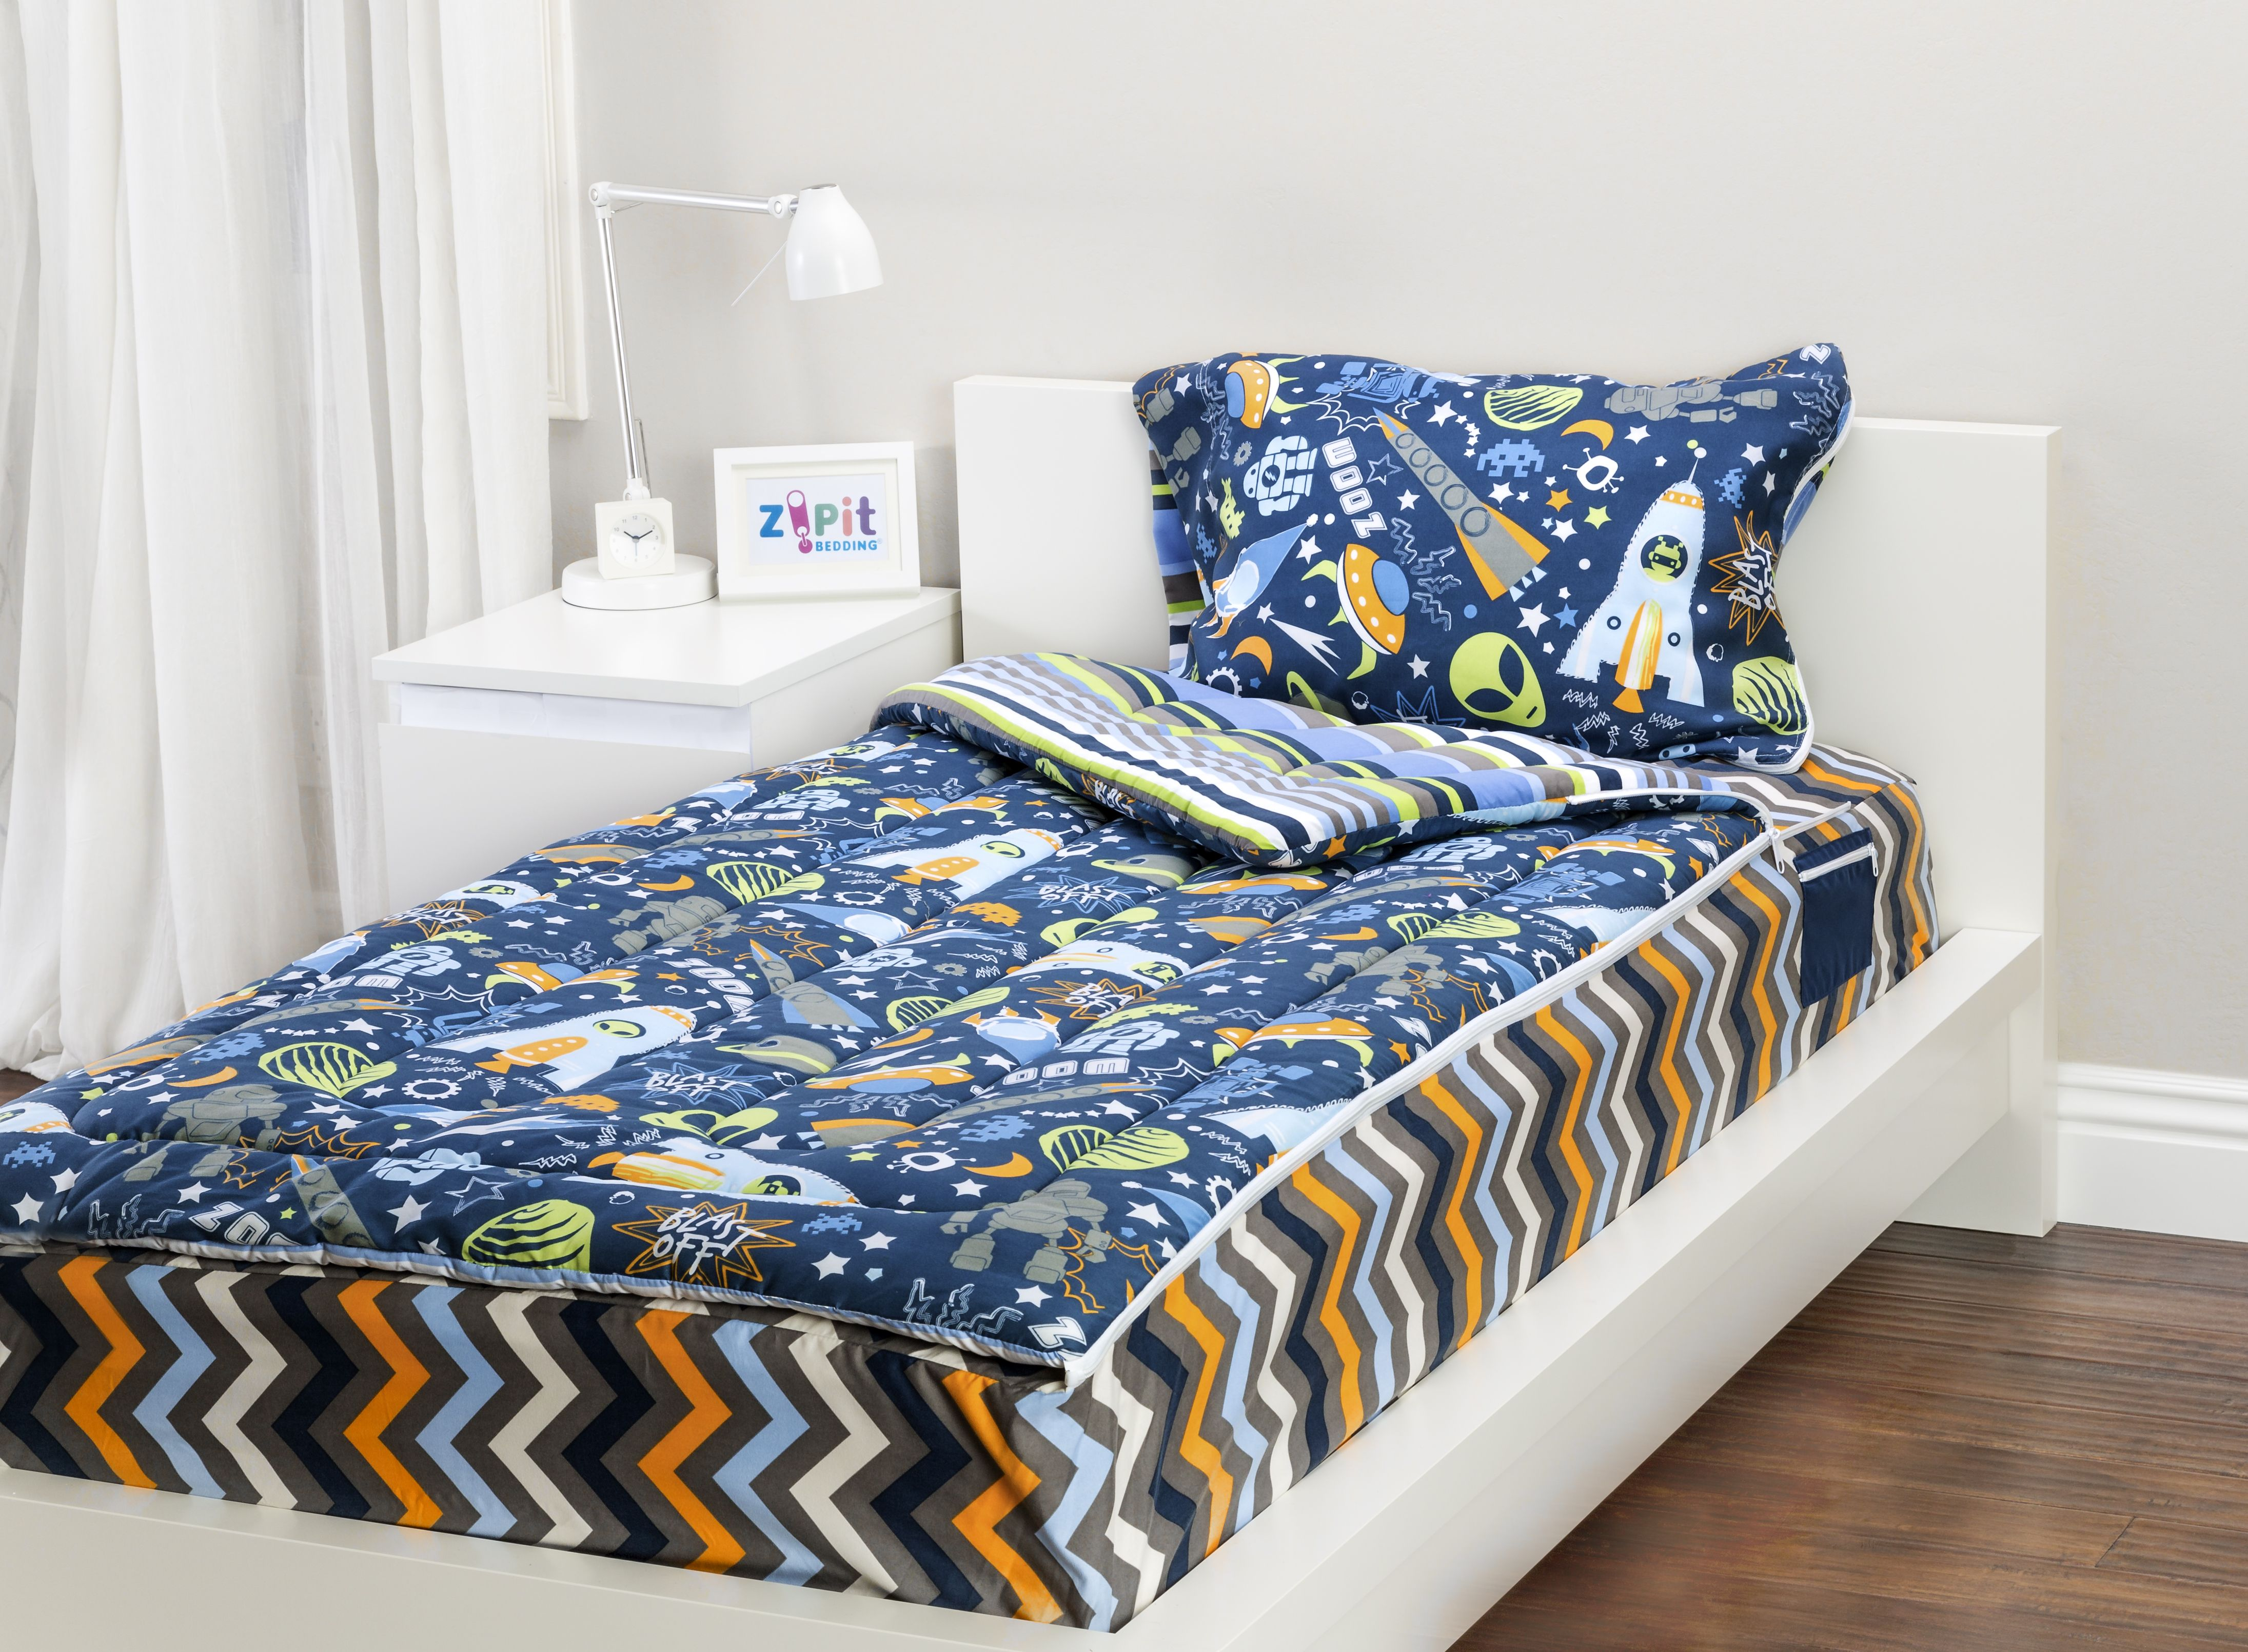 Remarkable Zipit Bedding Mix N Match With Outer Space And Extreme Gmtry Best Dining Table And Chair Ideas Images Gmtryco